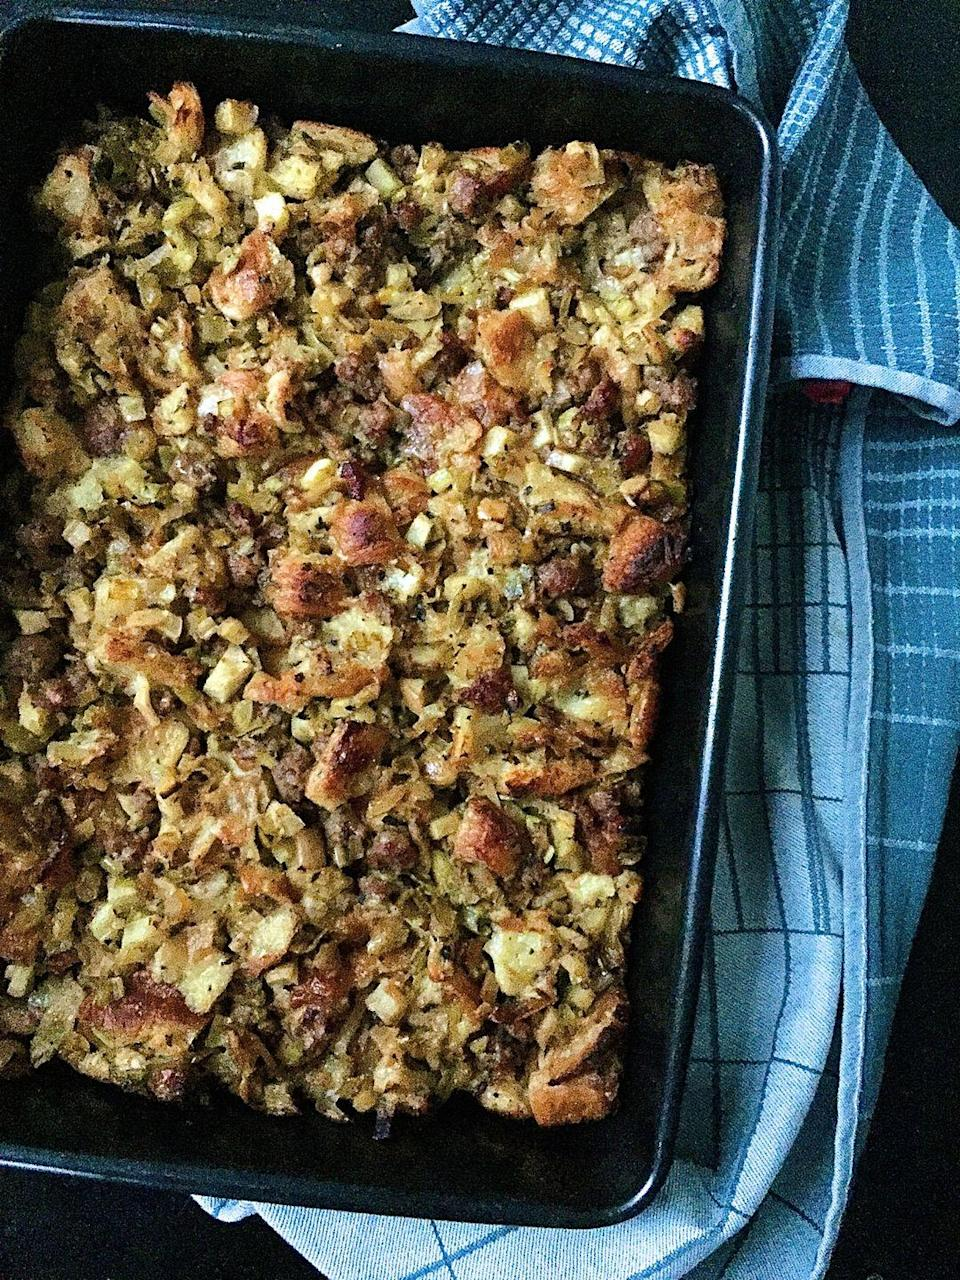 """<p>Torn fresh croissants make this stuffing extra rich and amazingly buttery.</p><p>Get the recipe from <a href=""""https://www.delish.com/holiday-recipes/thanksgiving/recipes/a44602/croissant-stuffing-sausage-apples-recipe/"""" rel=""""nofollow noopener"""" target=""""_blank"""" data-ylk=""""slk:Delish"""" class=""""link rapid-noclick-resp"""">Delish</a>.</p>"""